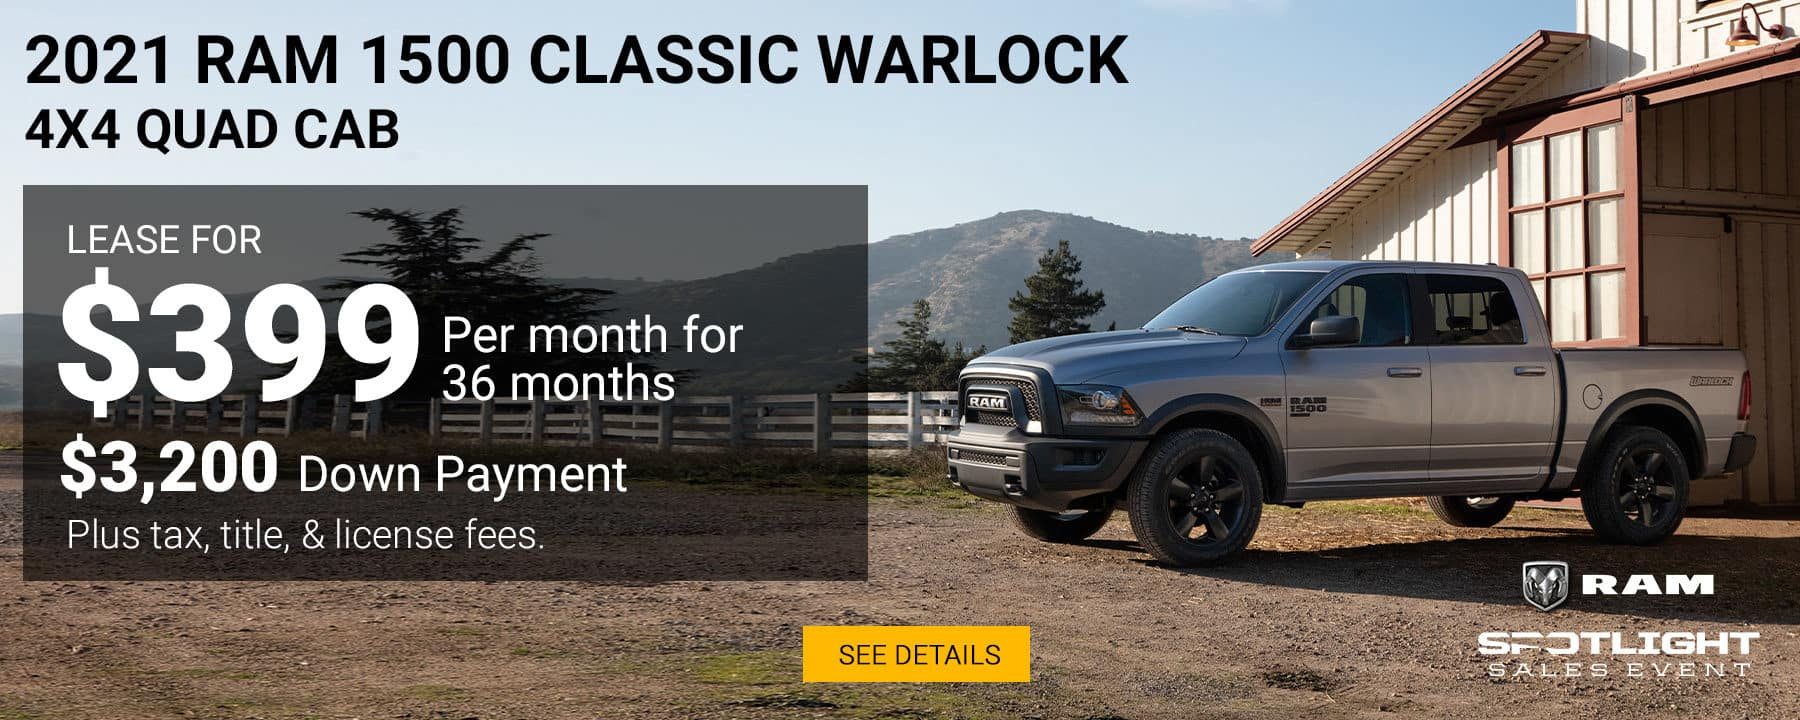 During the RAM Spotlight Event, Lease a 2021 RAM 1500 Classic Warlock for $399 per month with $3,200 down